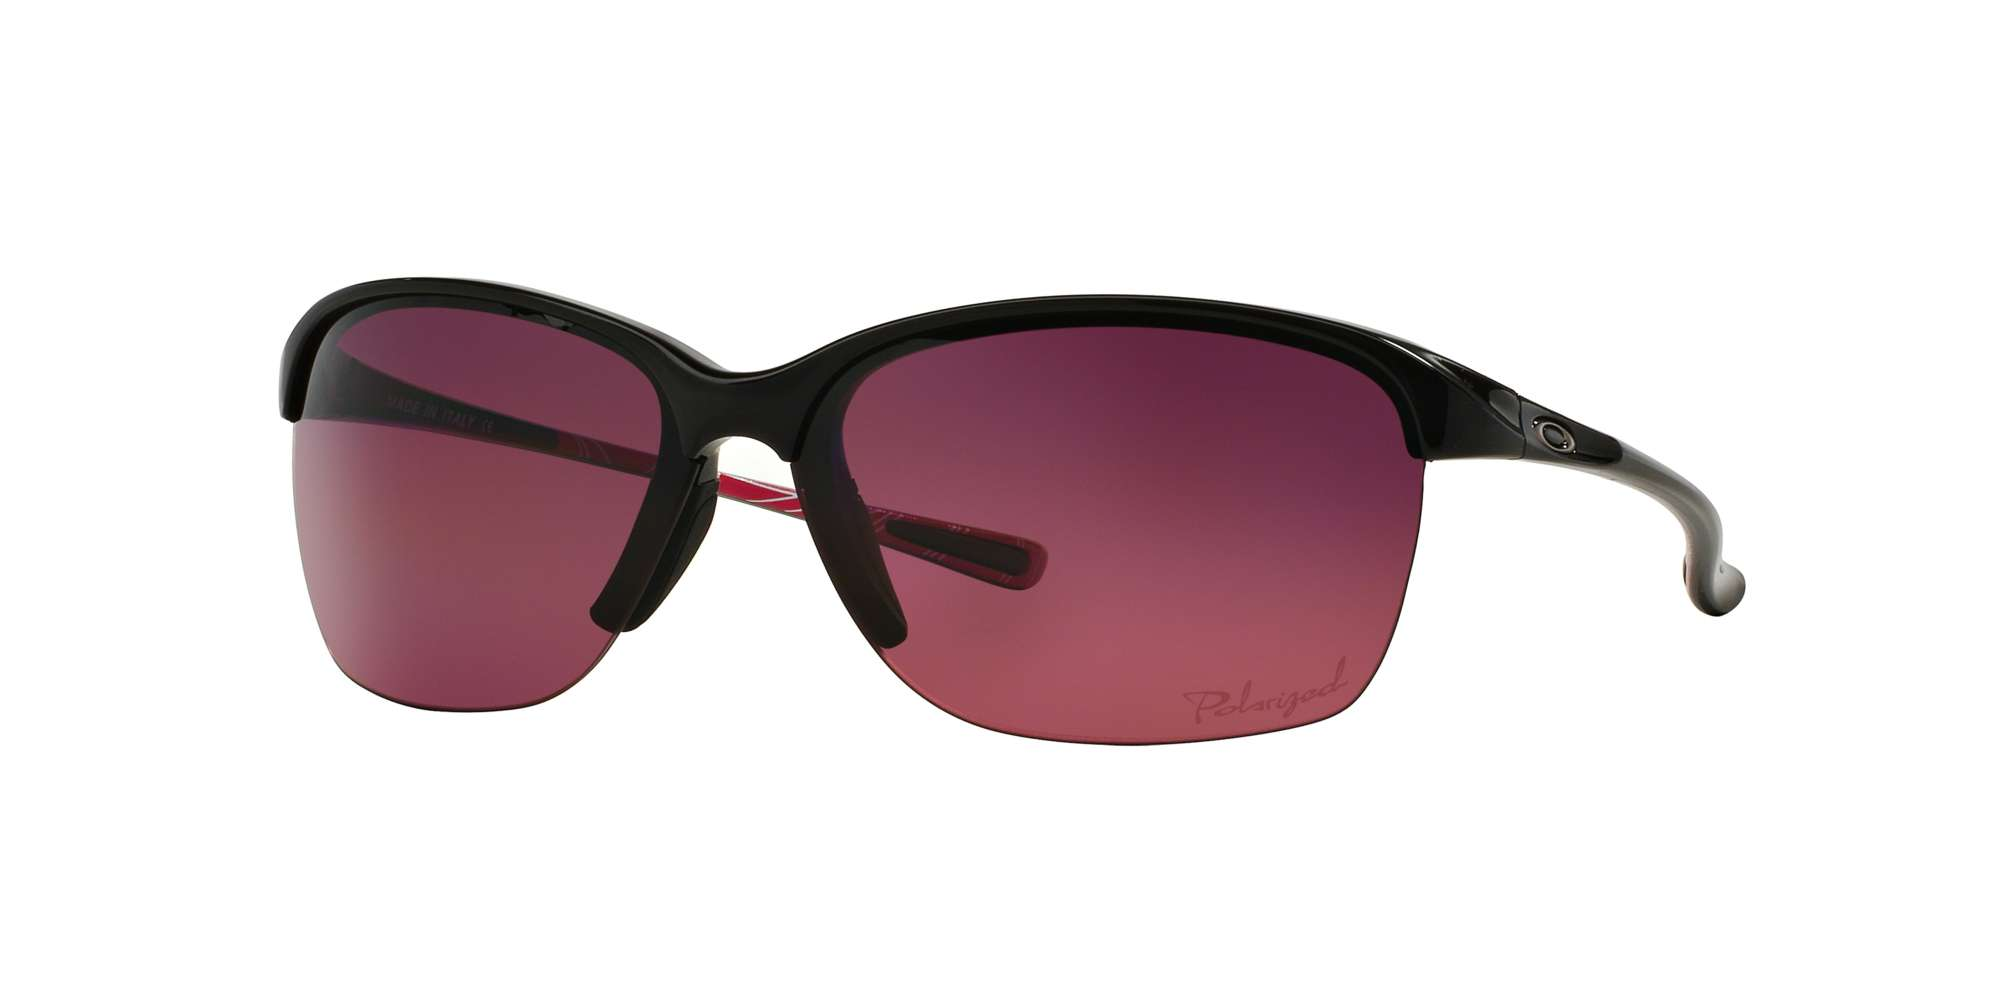 POLISHED BLACK / ROSE GRADIENT POLARIZED lenses